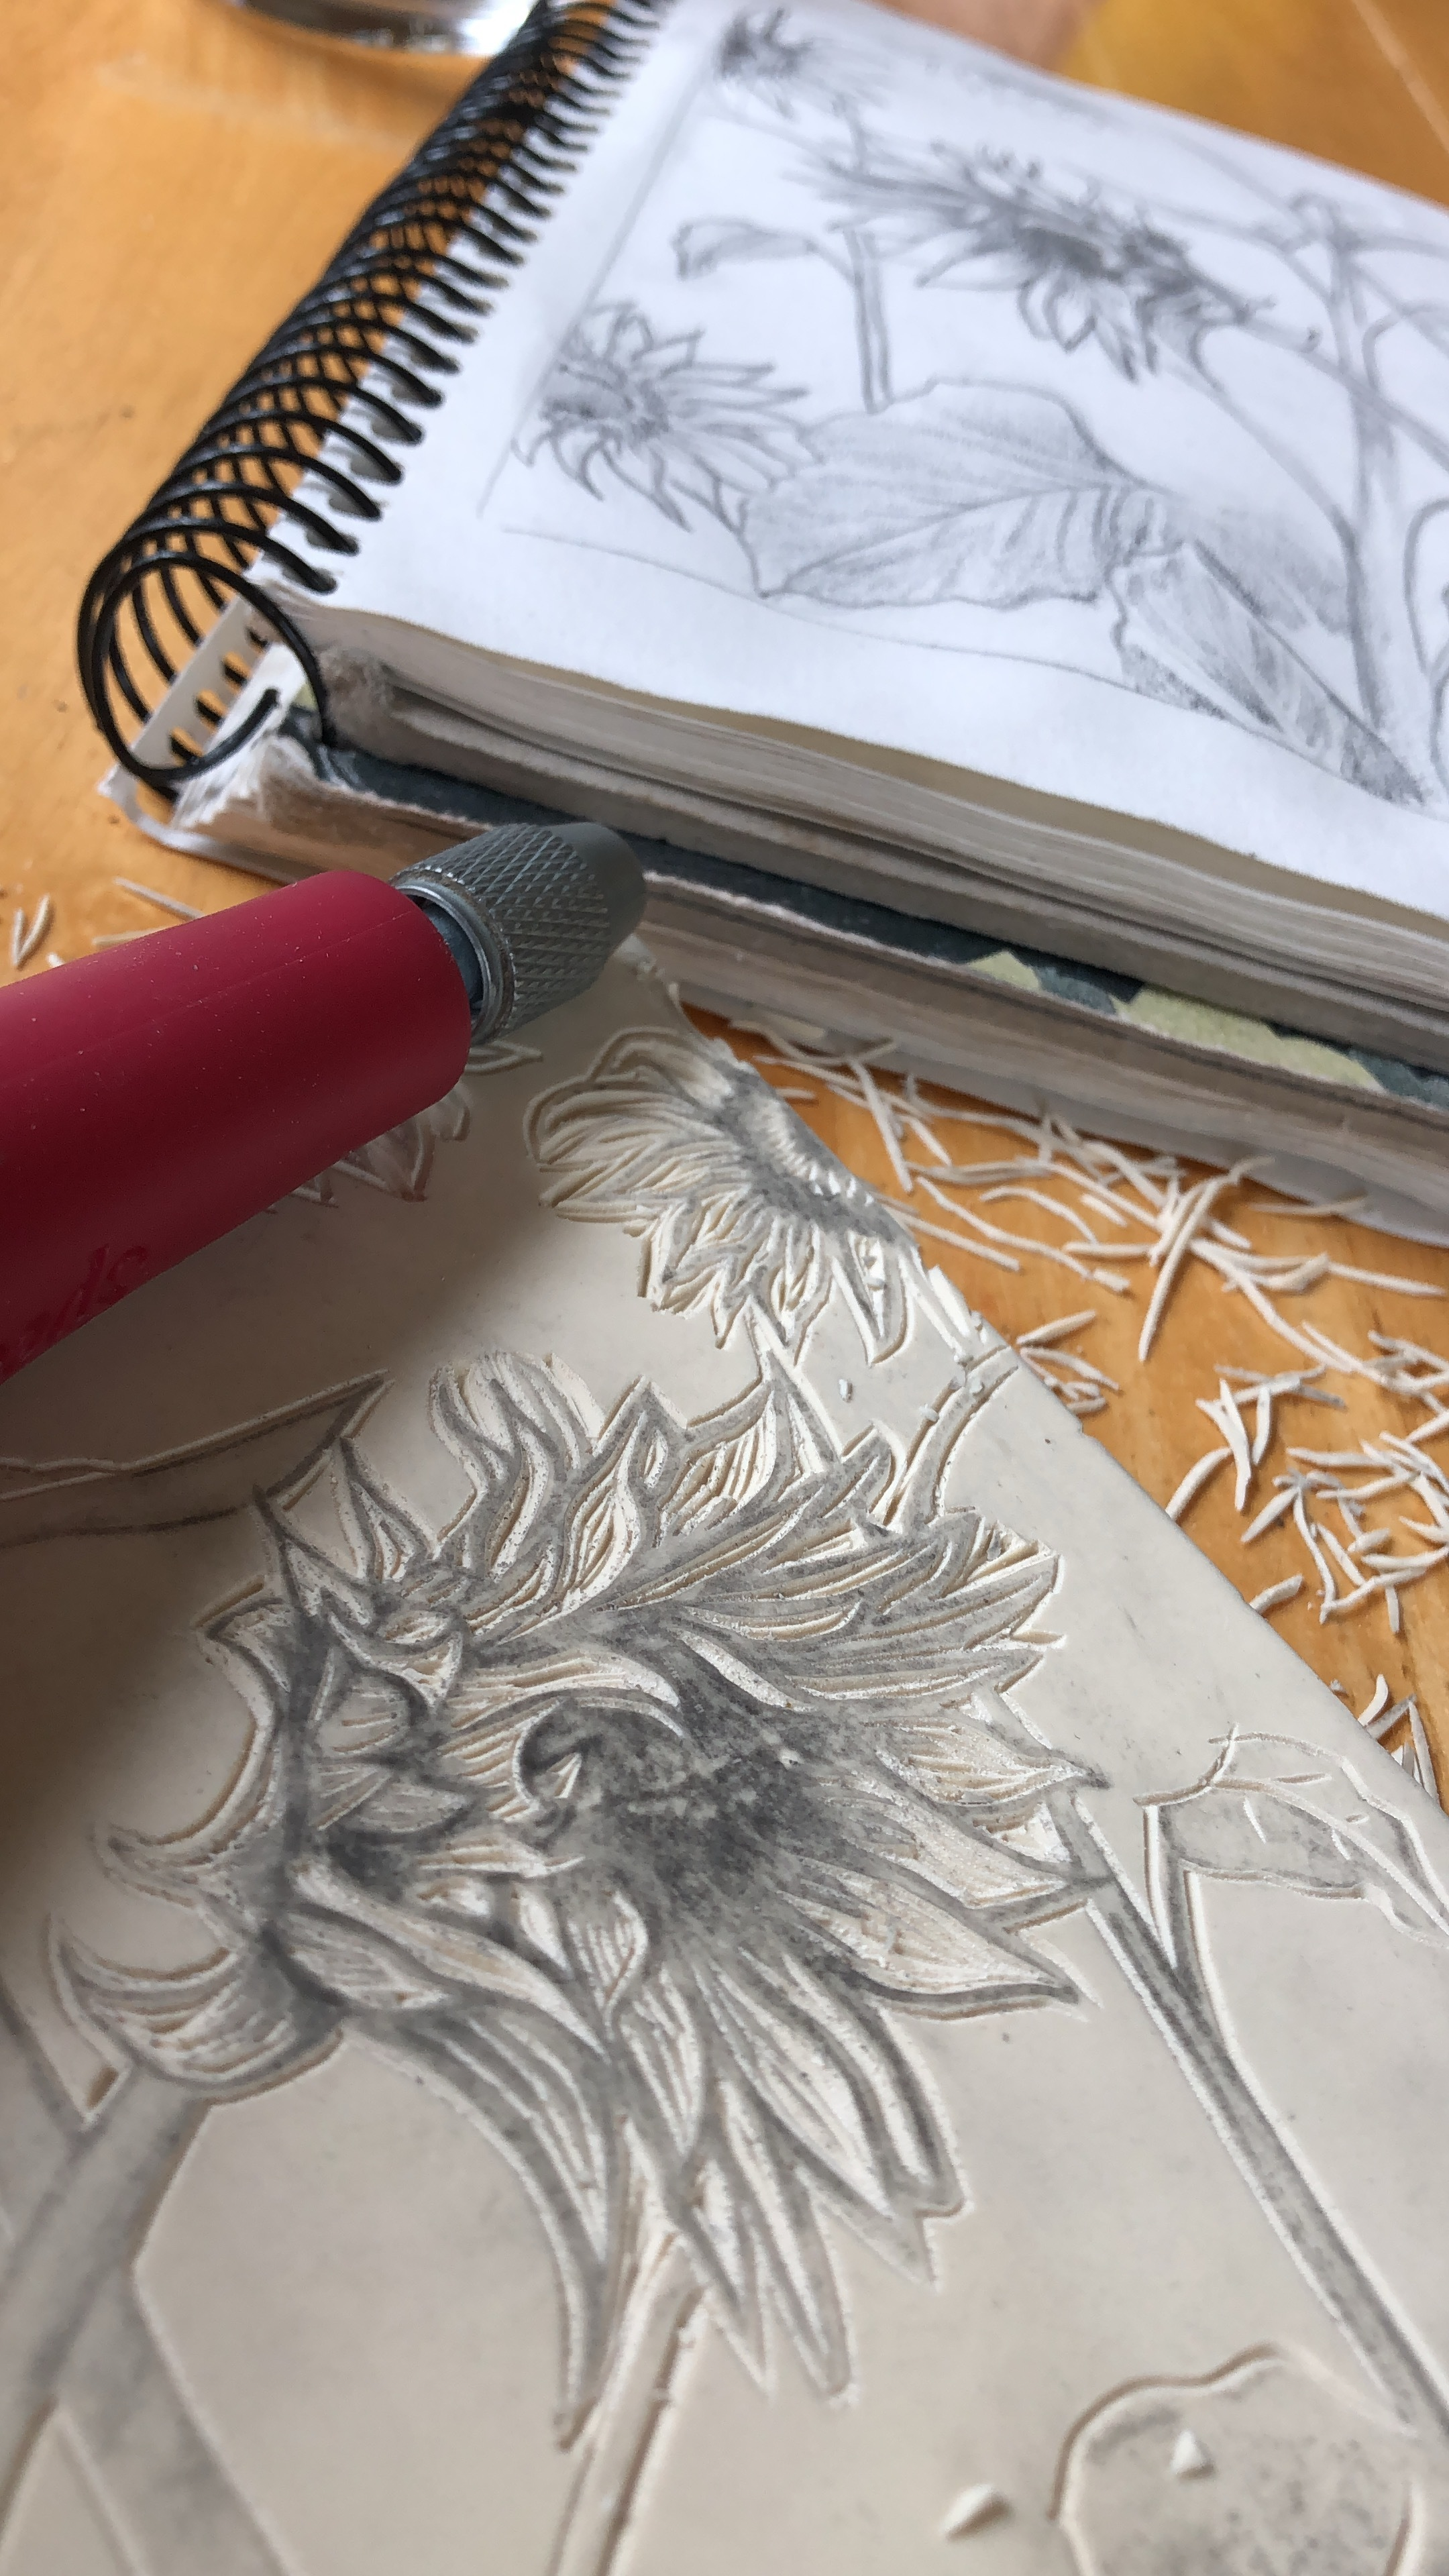 Sunflower sketch and intitial carving lines.